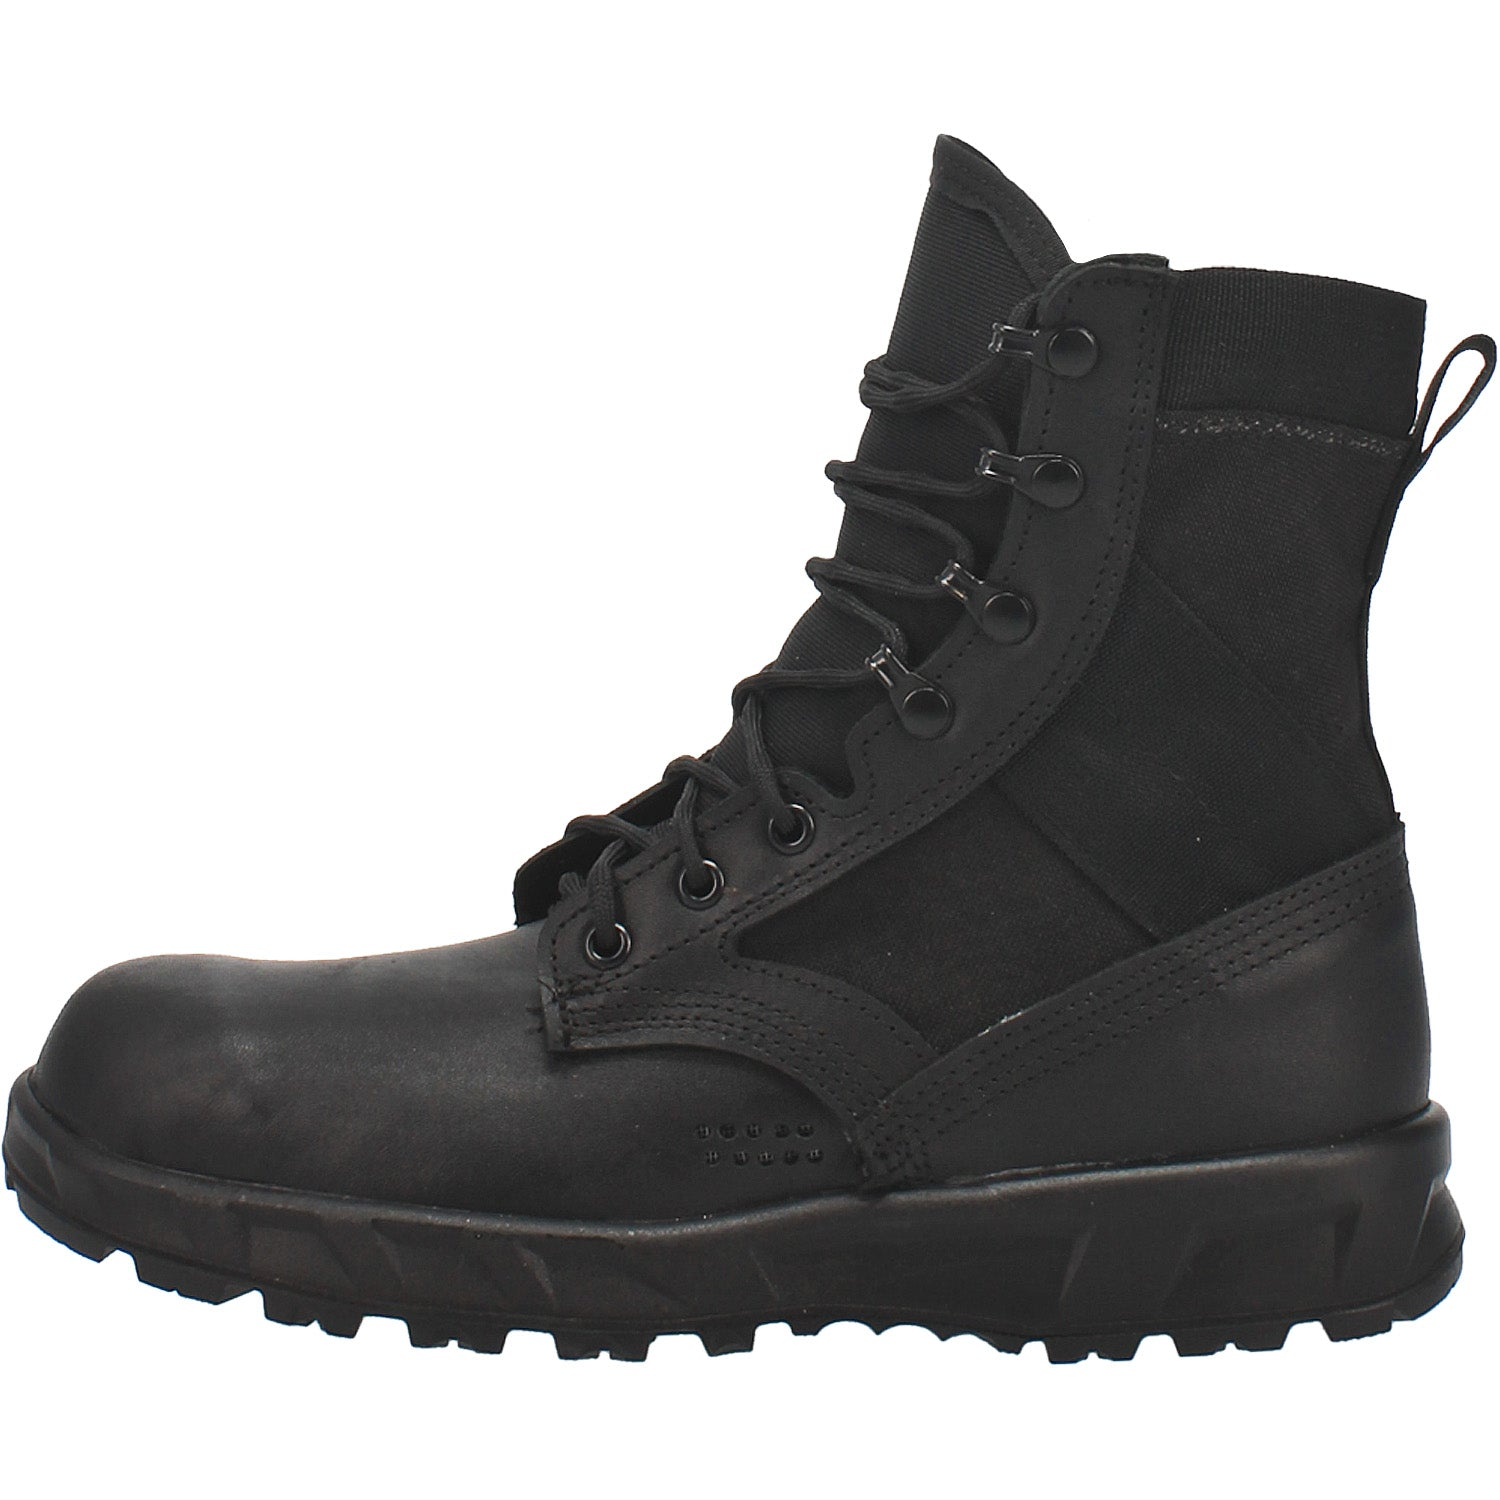 T2 Ultra Light Hot Weather Combat Boot 27986662948906